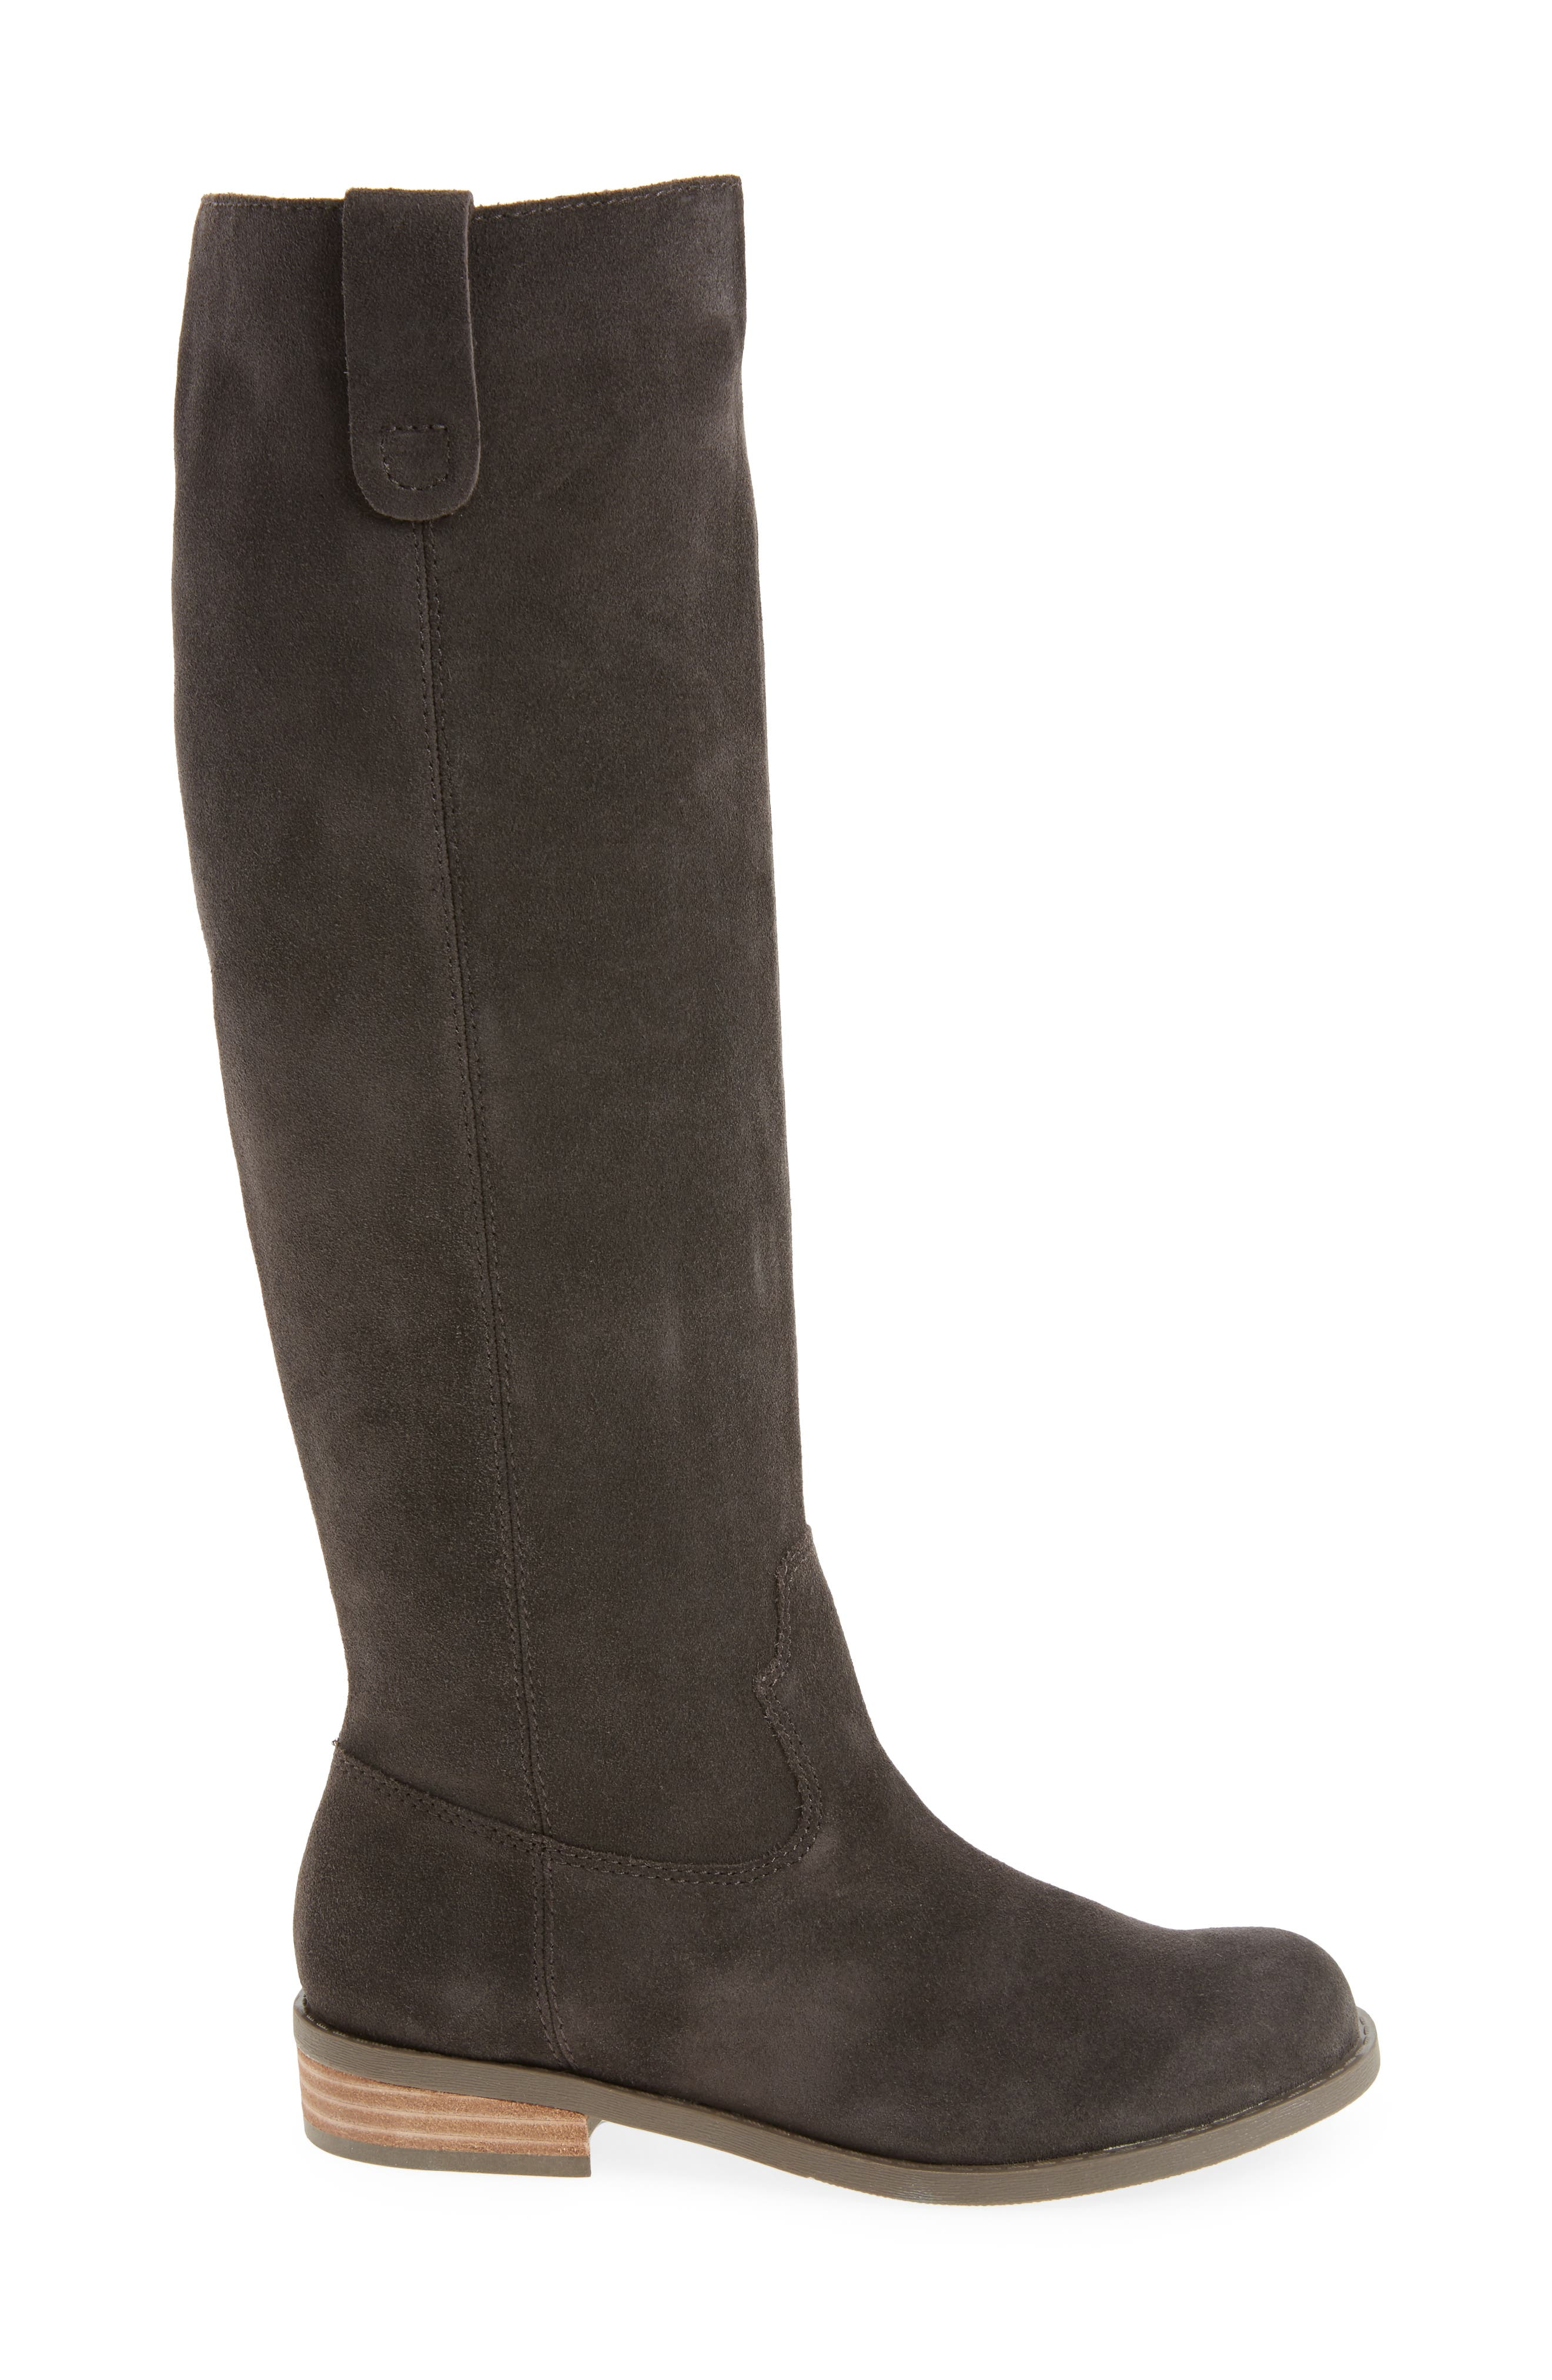 Hawn Knee High Boot,                             Alternate thumbnail 3, color,                             021